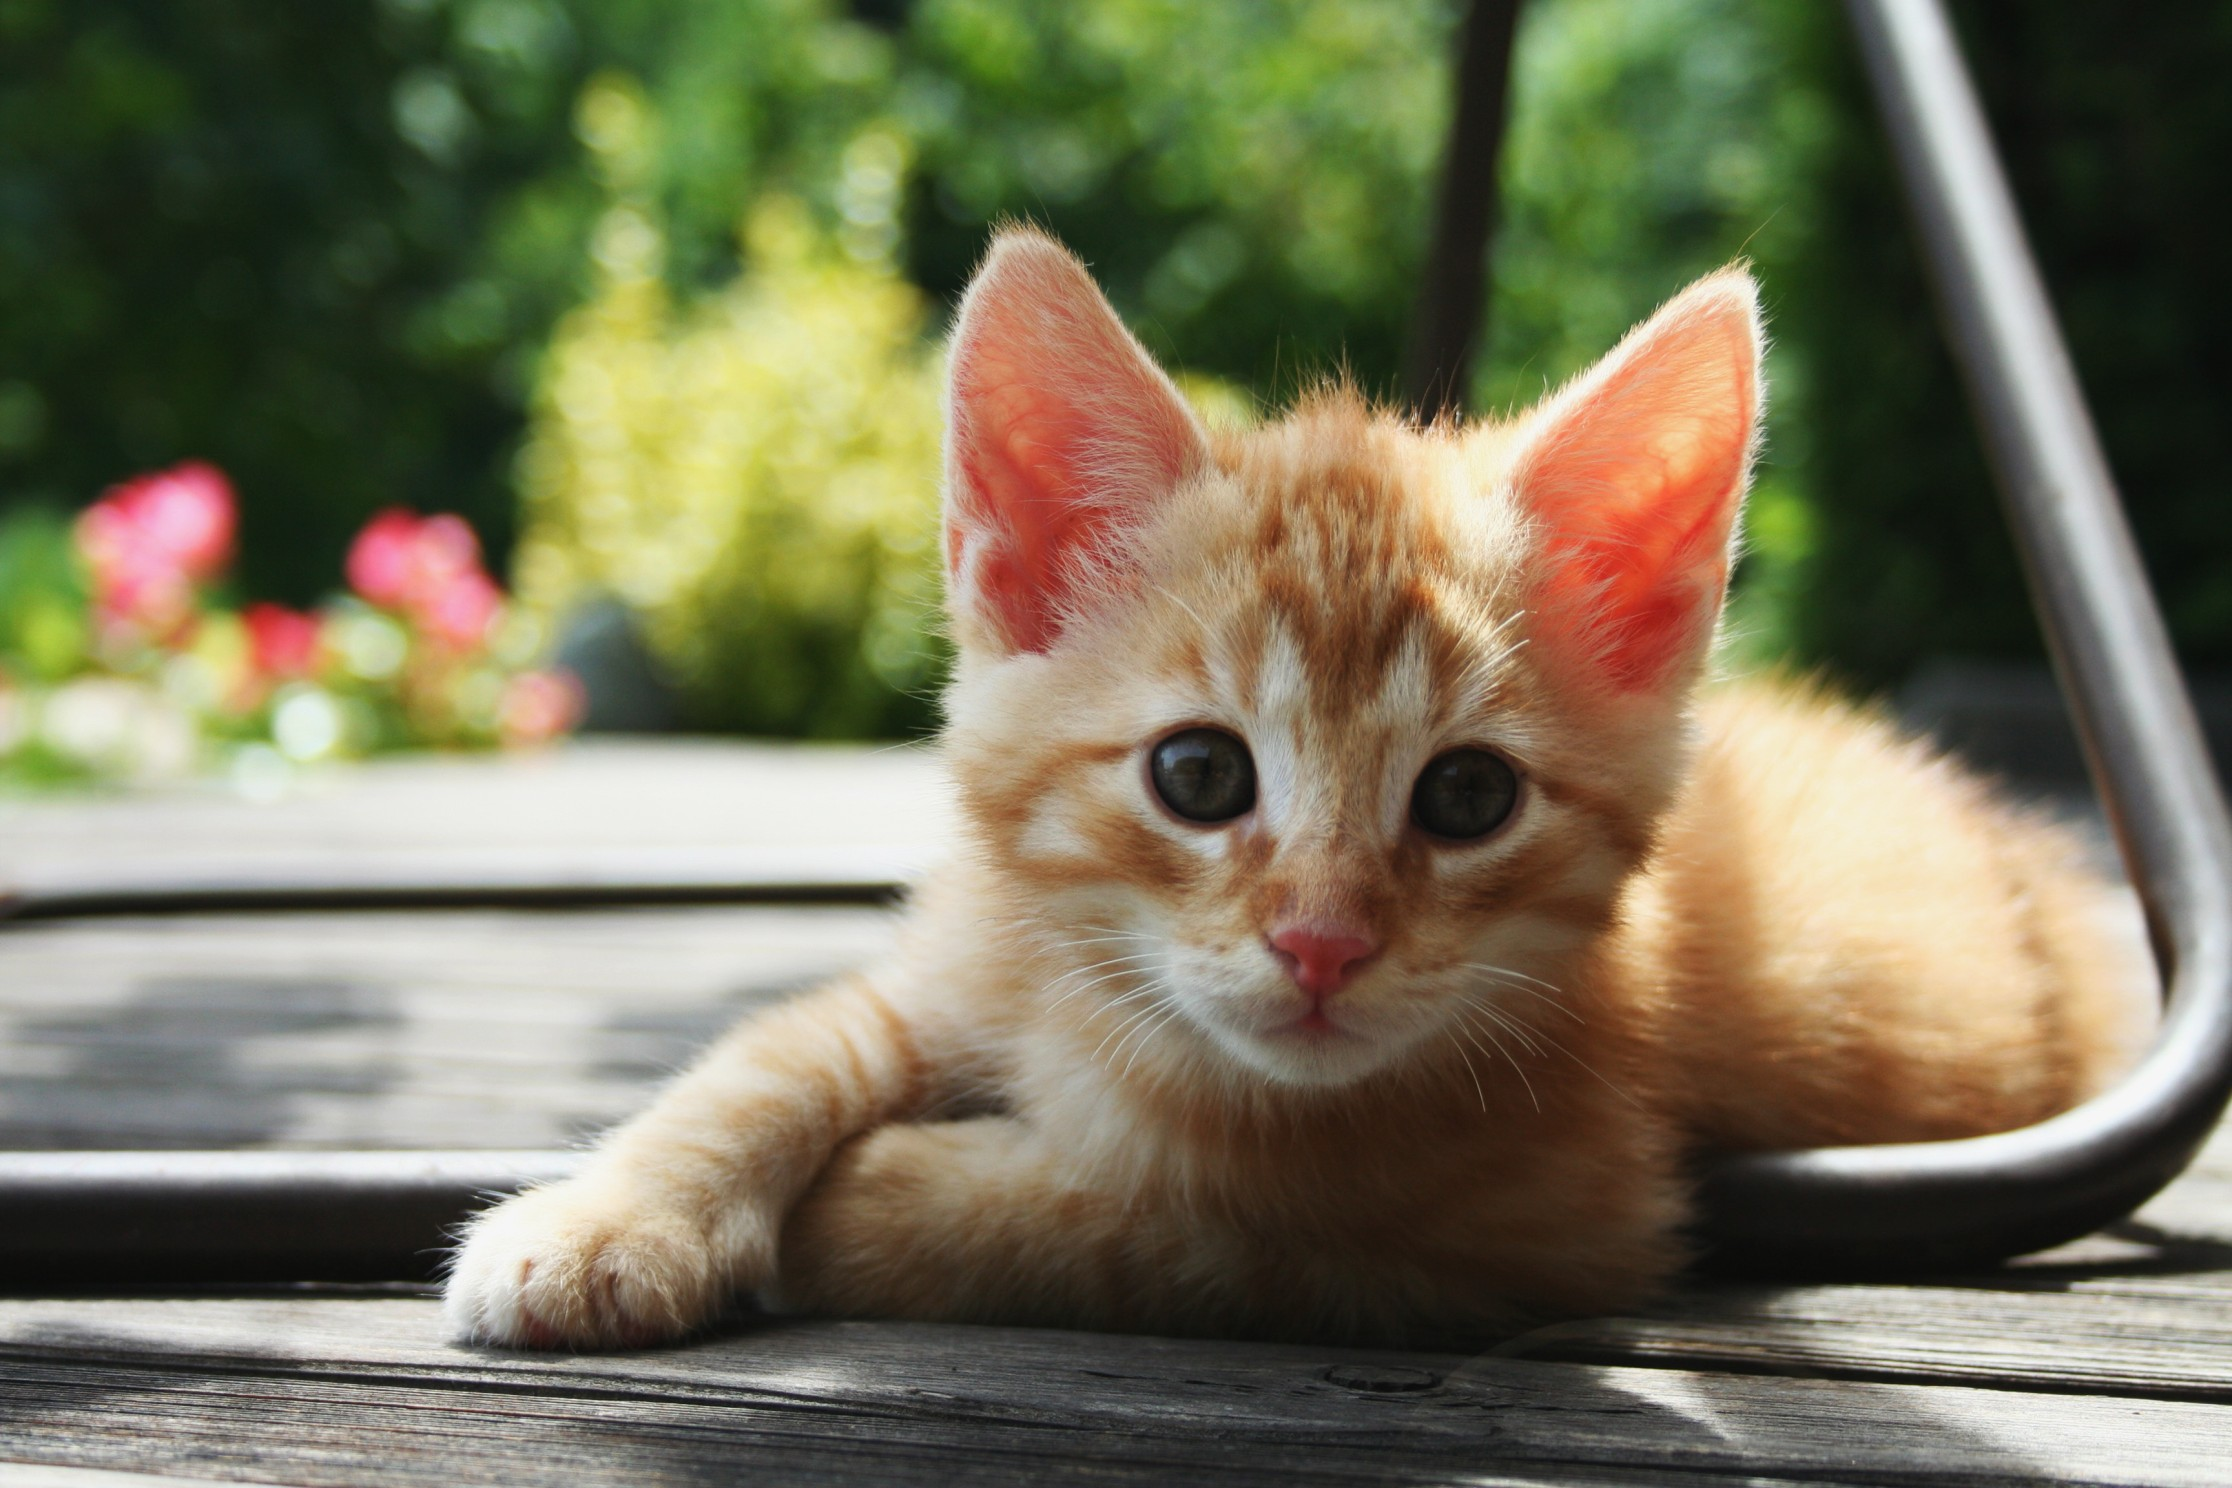 Unrelated picture of a kitten